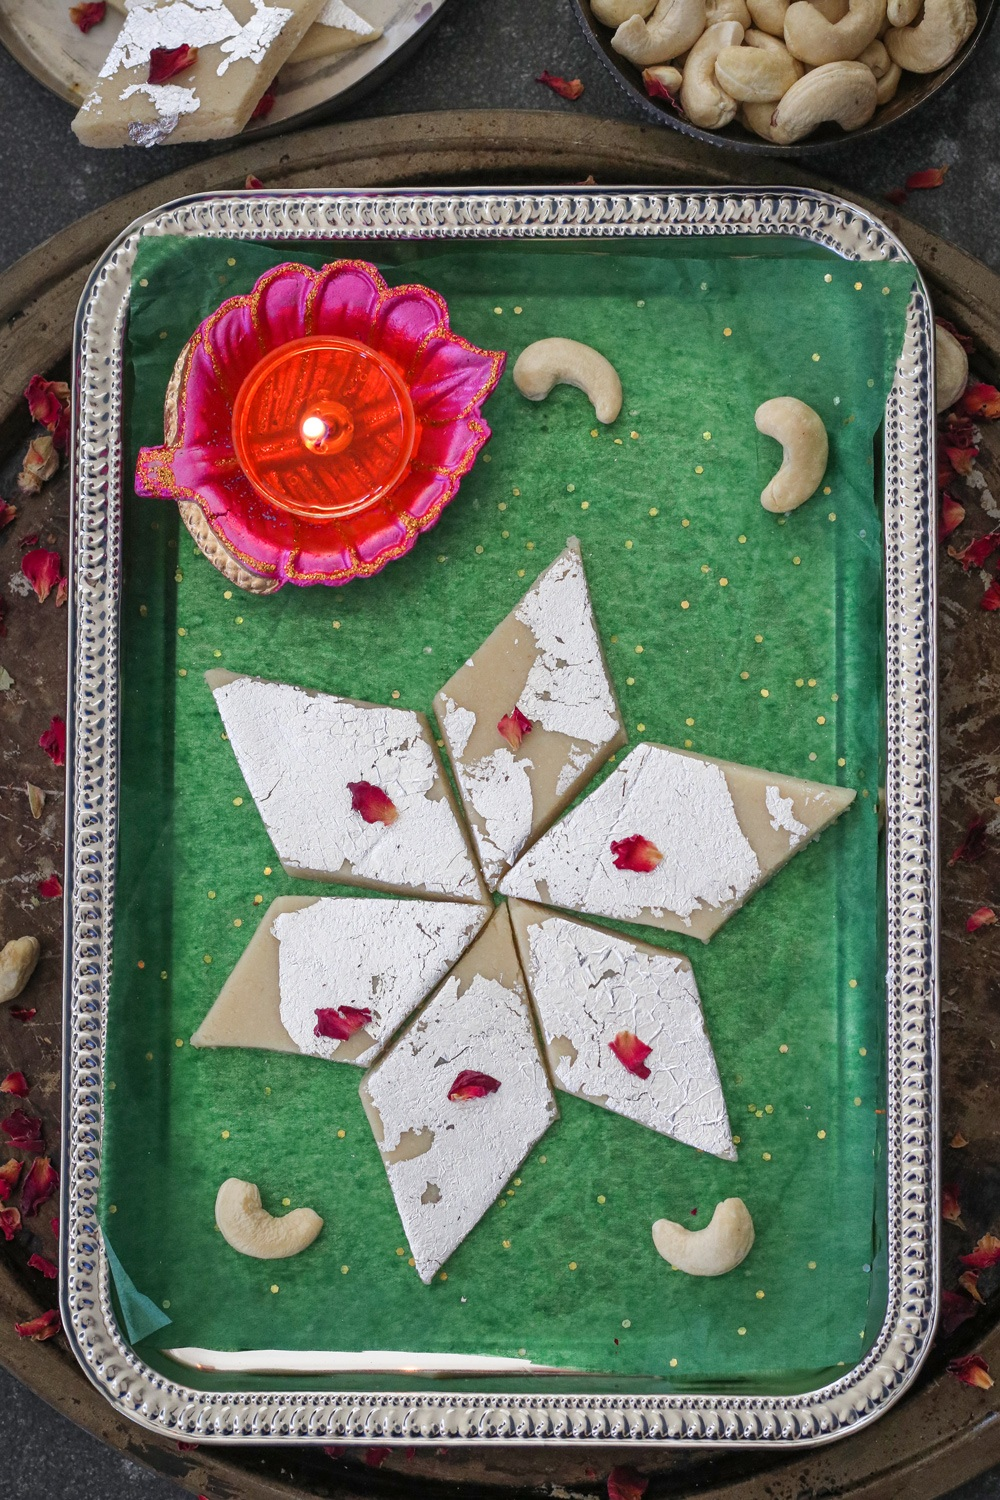 Kaju Katli recipe staged in a tray